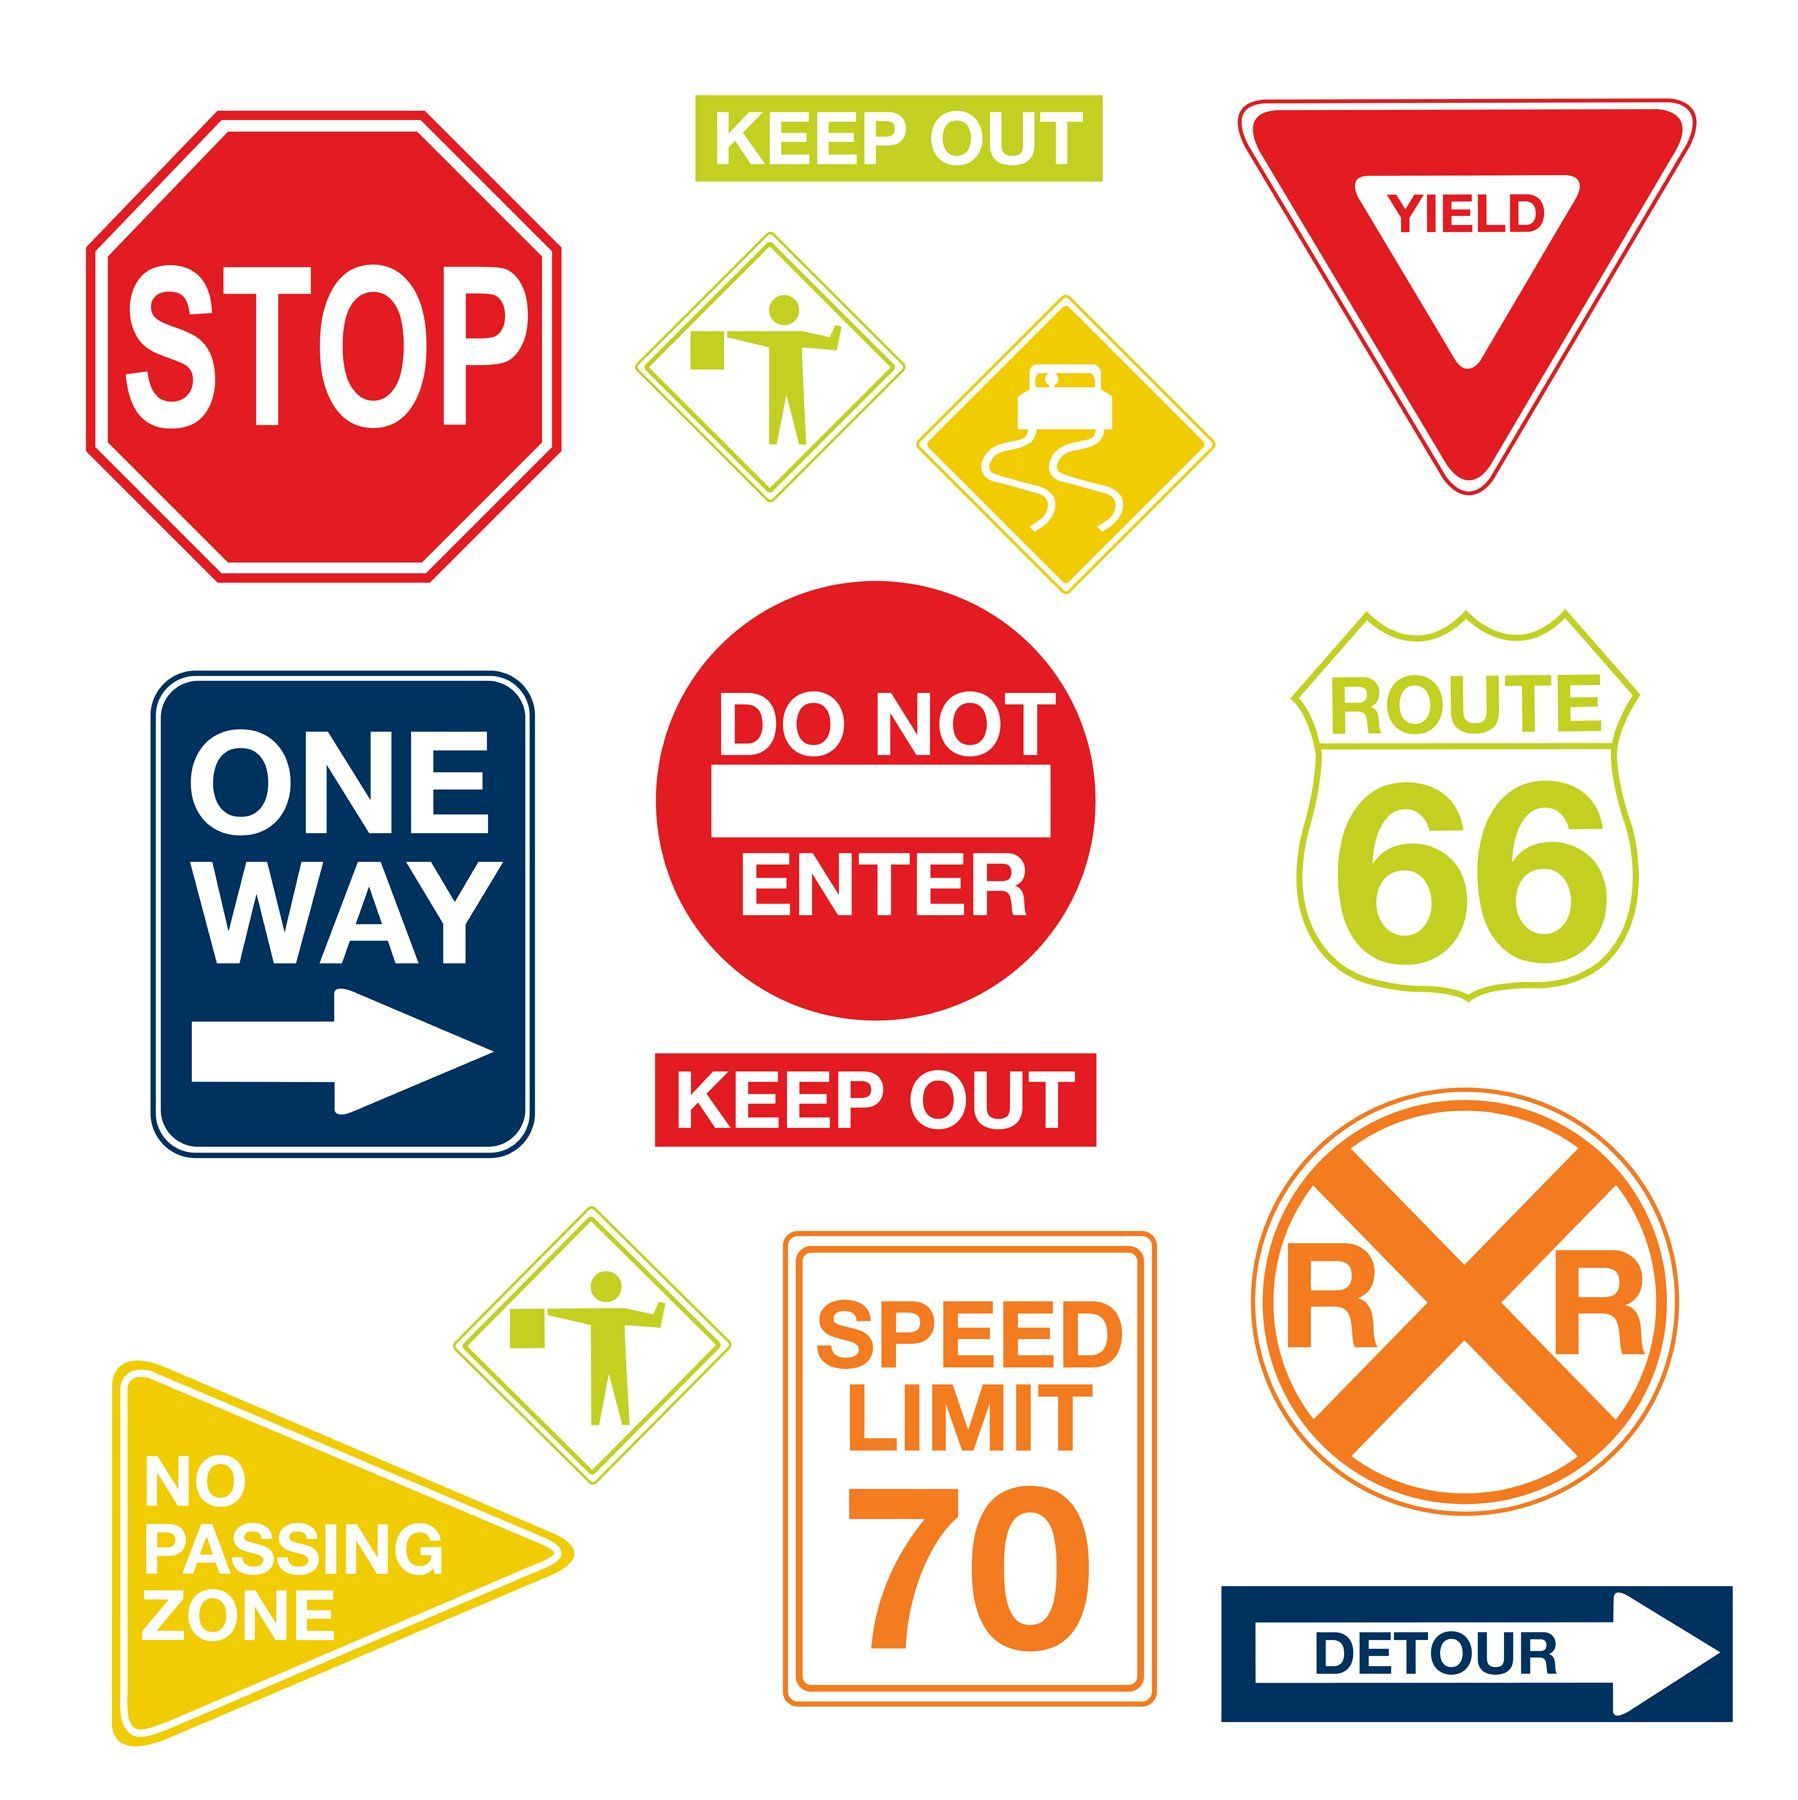 Road Sign Wall Decor New Wall Pops Wpk0617 Road Signs Wall Decals 1725Inch39Inch Design Inspiration